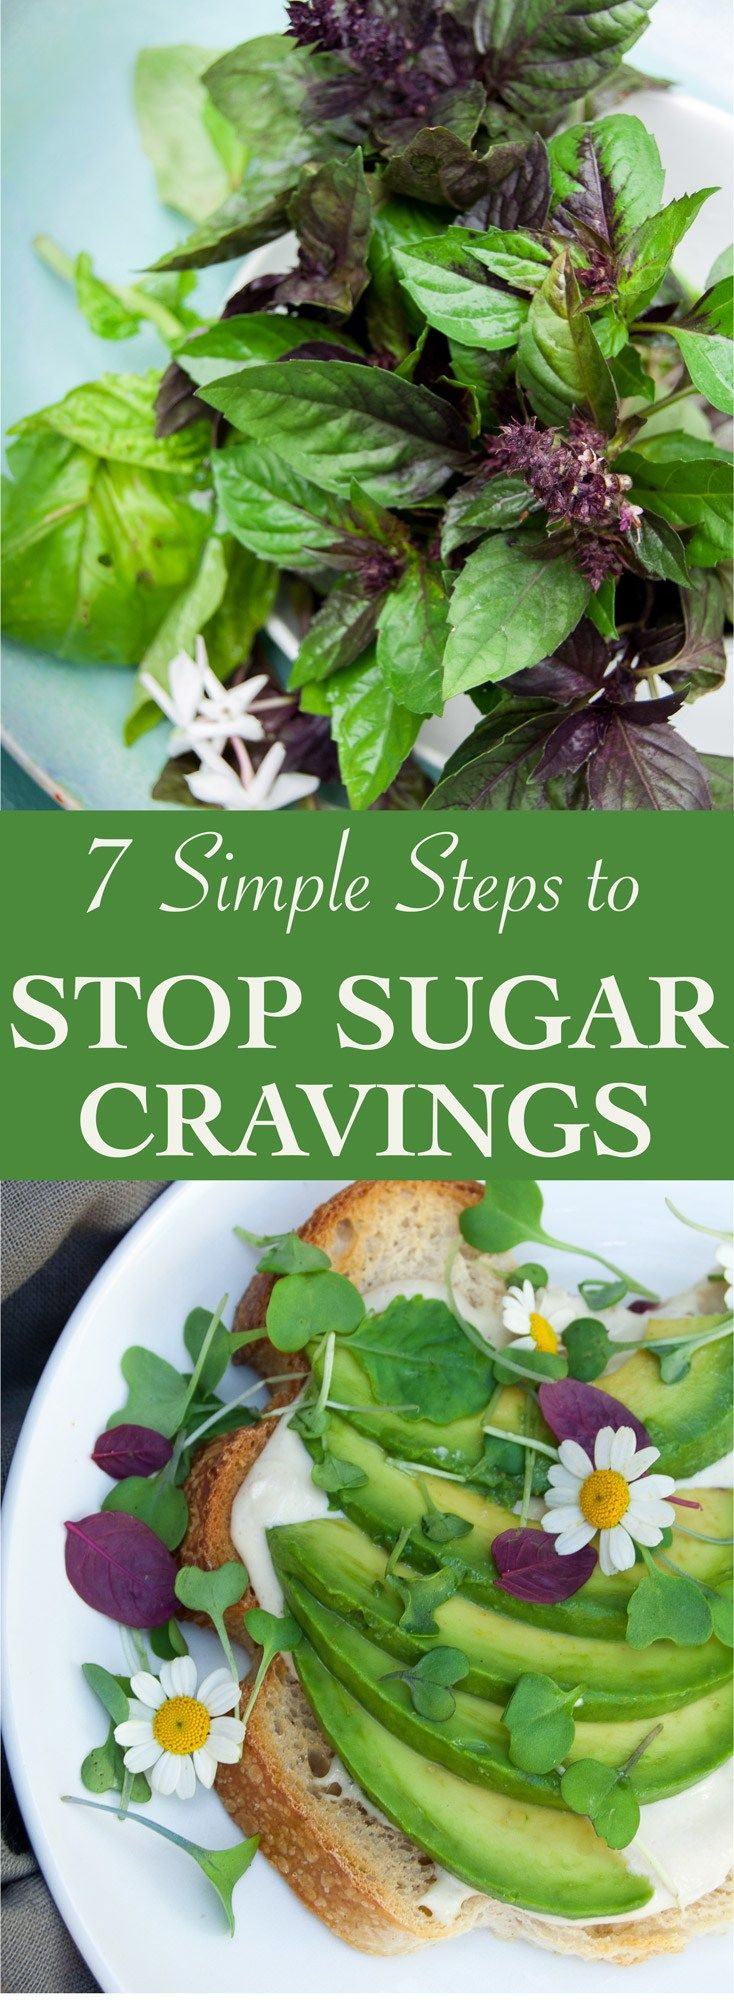 Stop Sugar Cravings   Weight loss   Food cravings